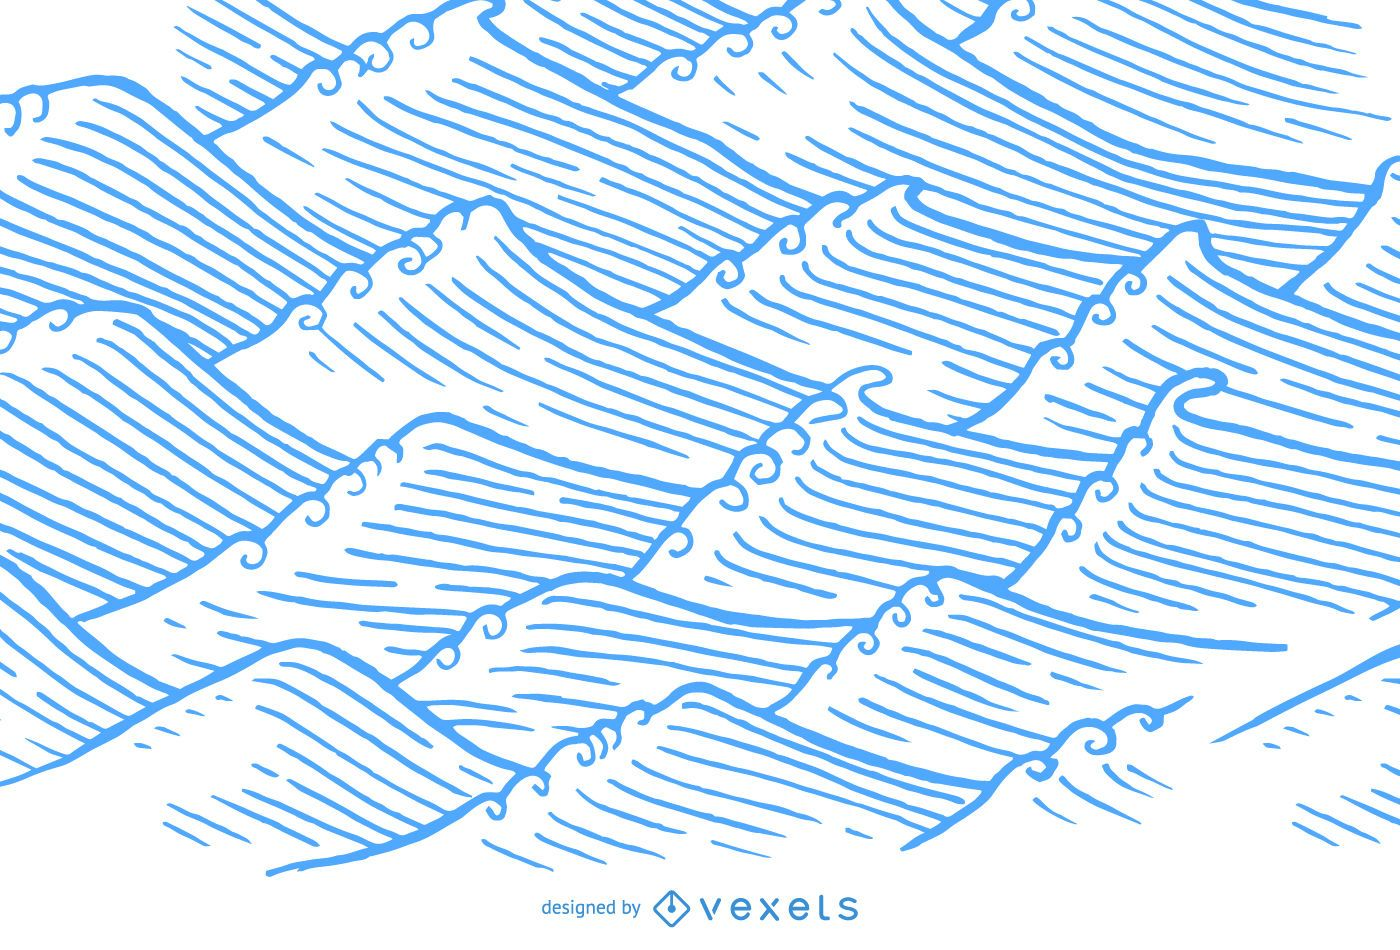 Hand drawn waves in asian illustration style